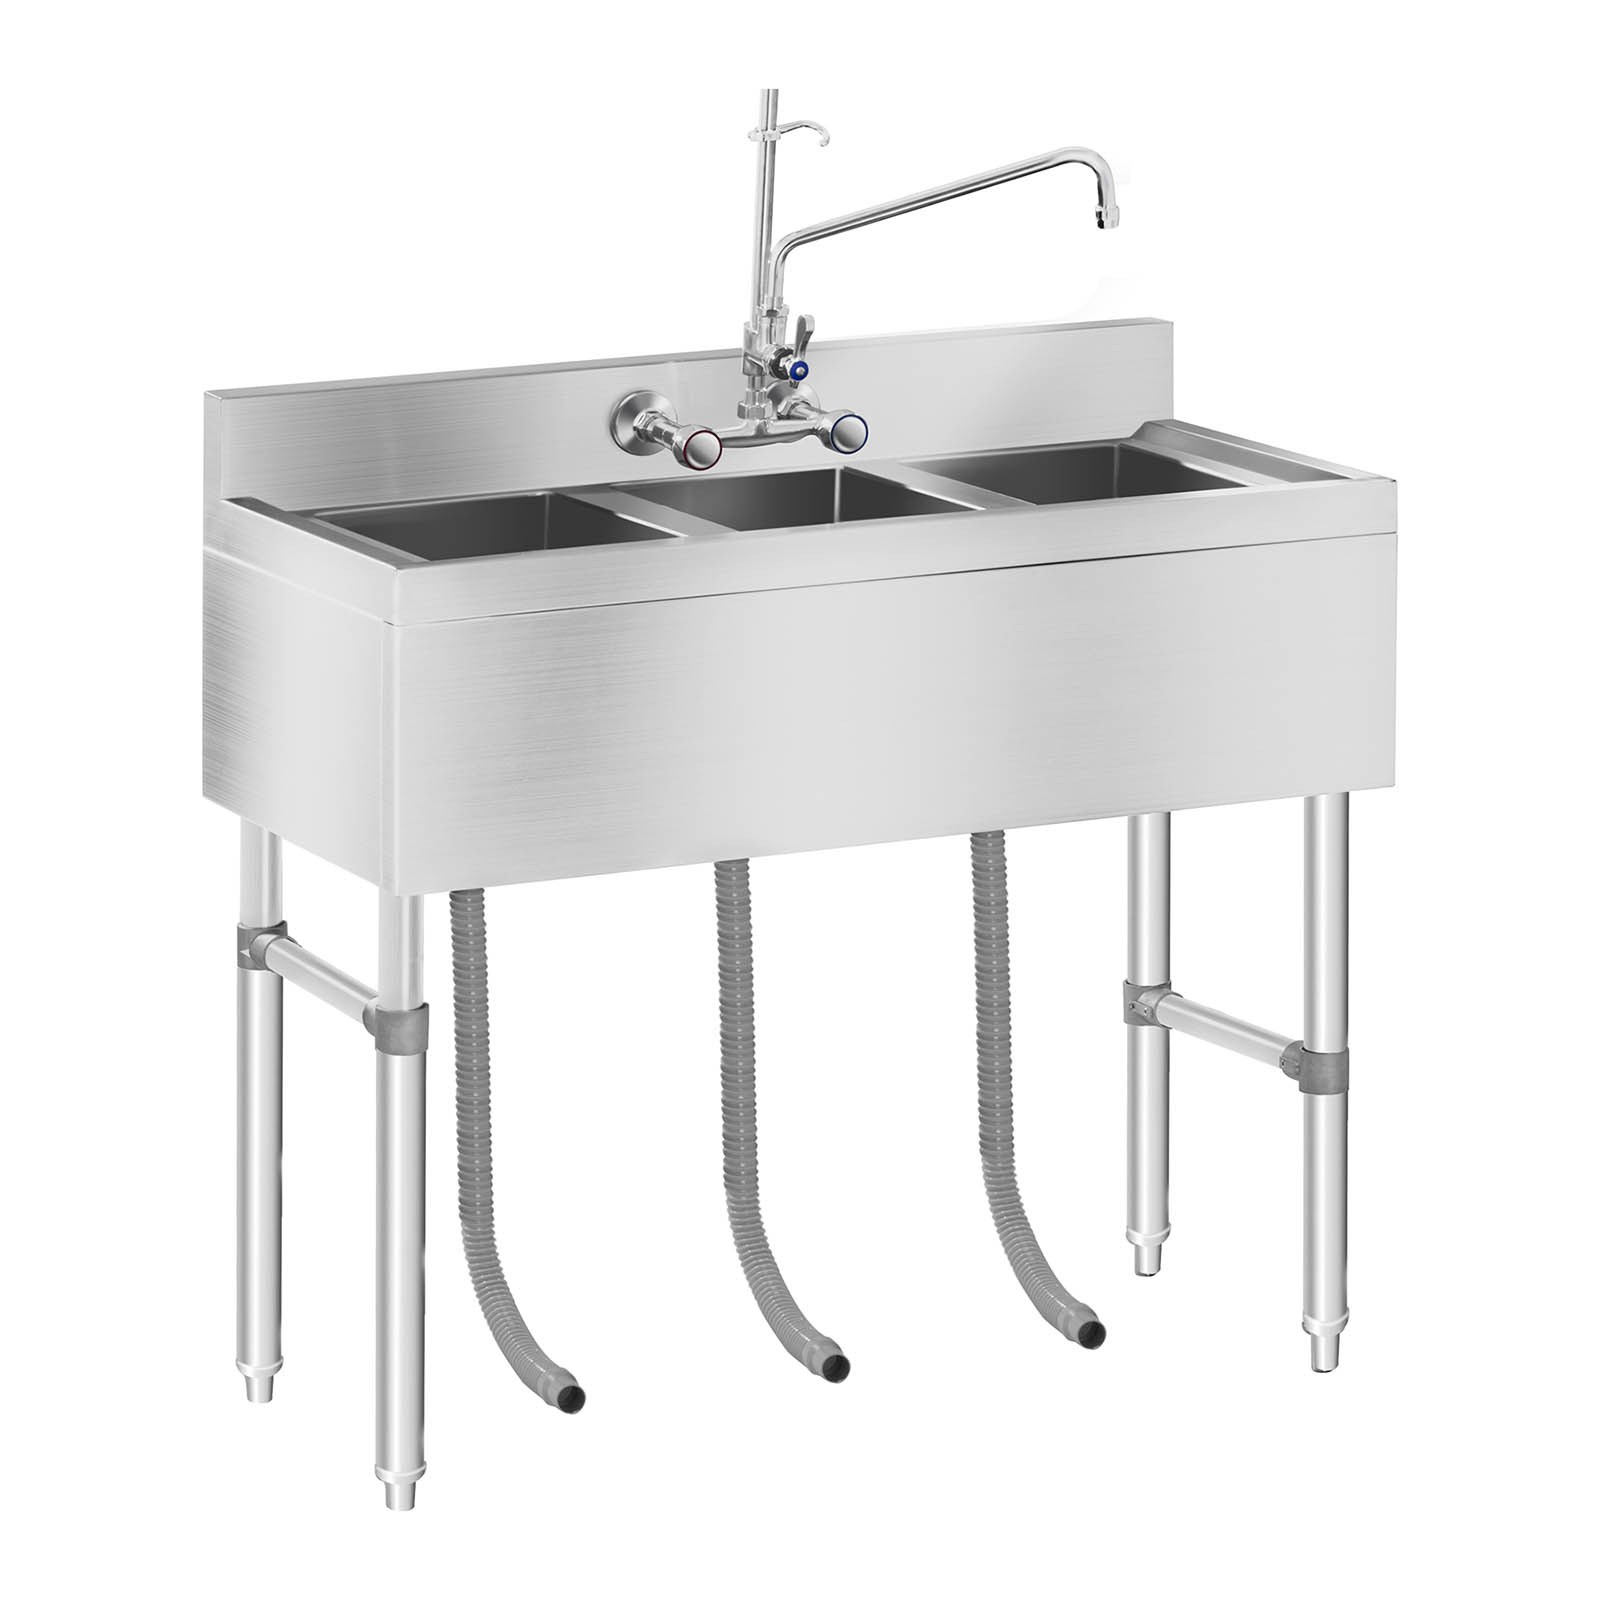 stainless steel commercial kitchen sinks kitchen sink three basin catering sink 8231